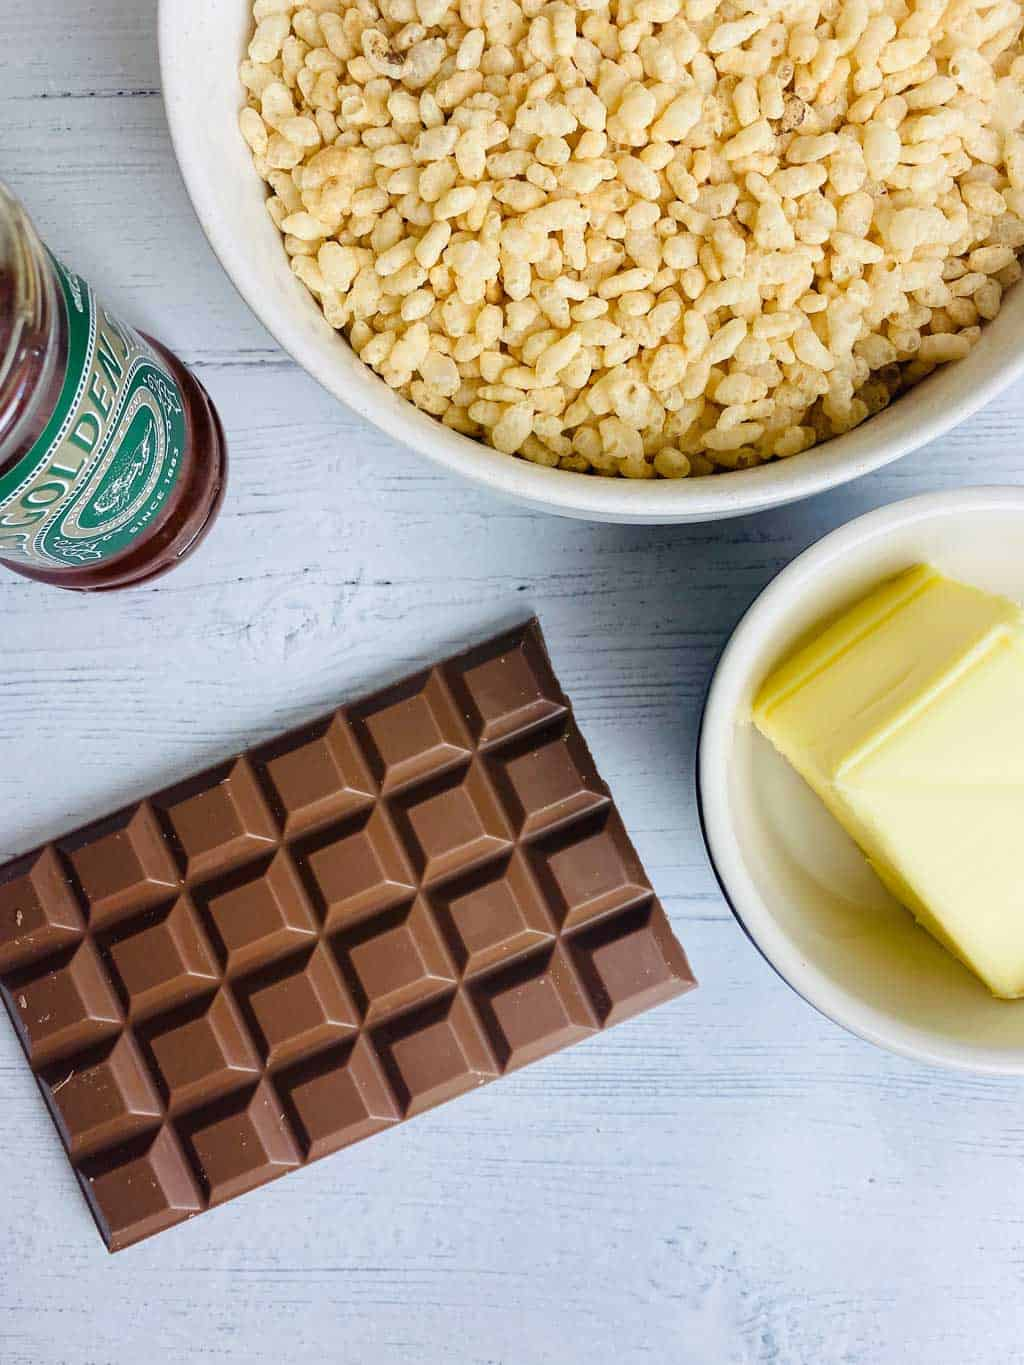 Ingredients for chocolate rice Krispy cake